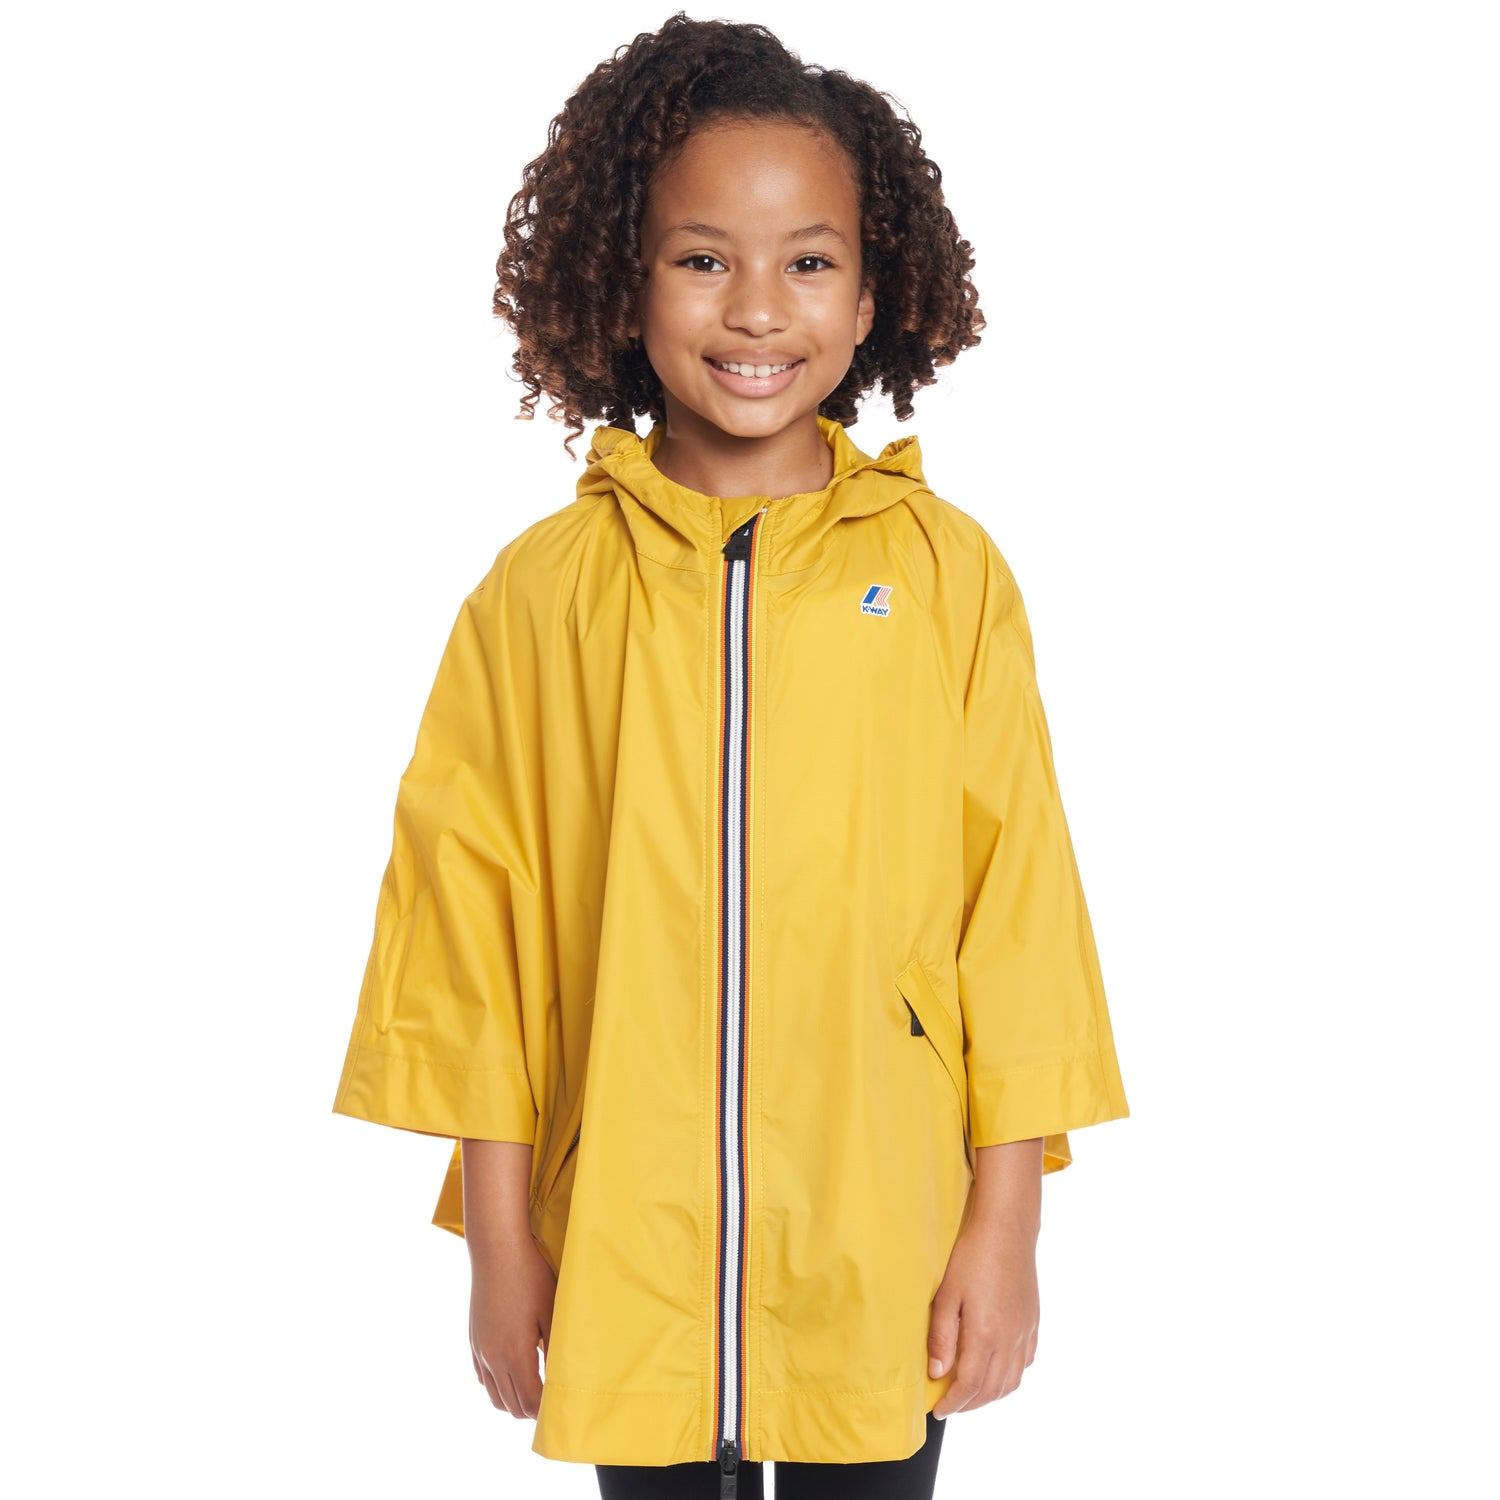 Kids Le Vrai 3.0 Morgan Poncho Yellow Mustard - Front